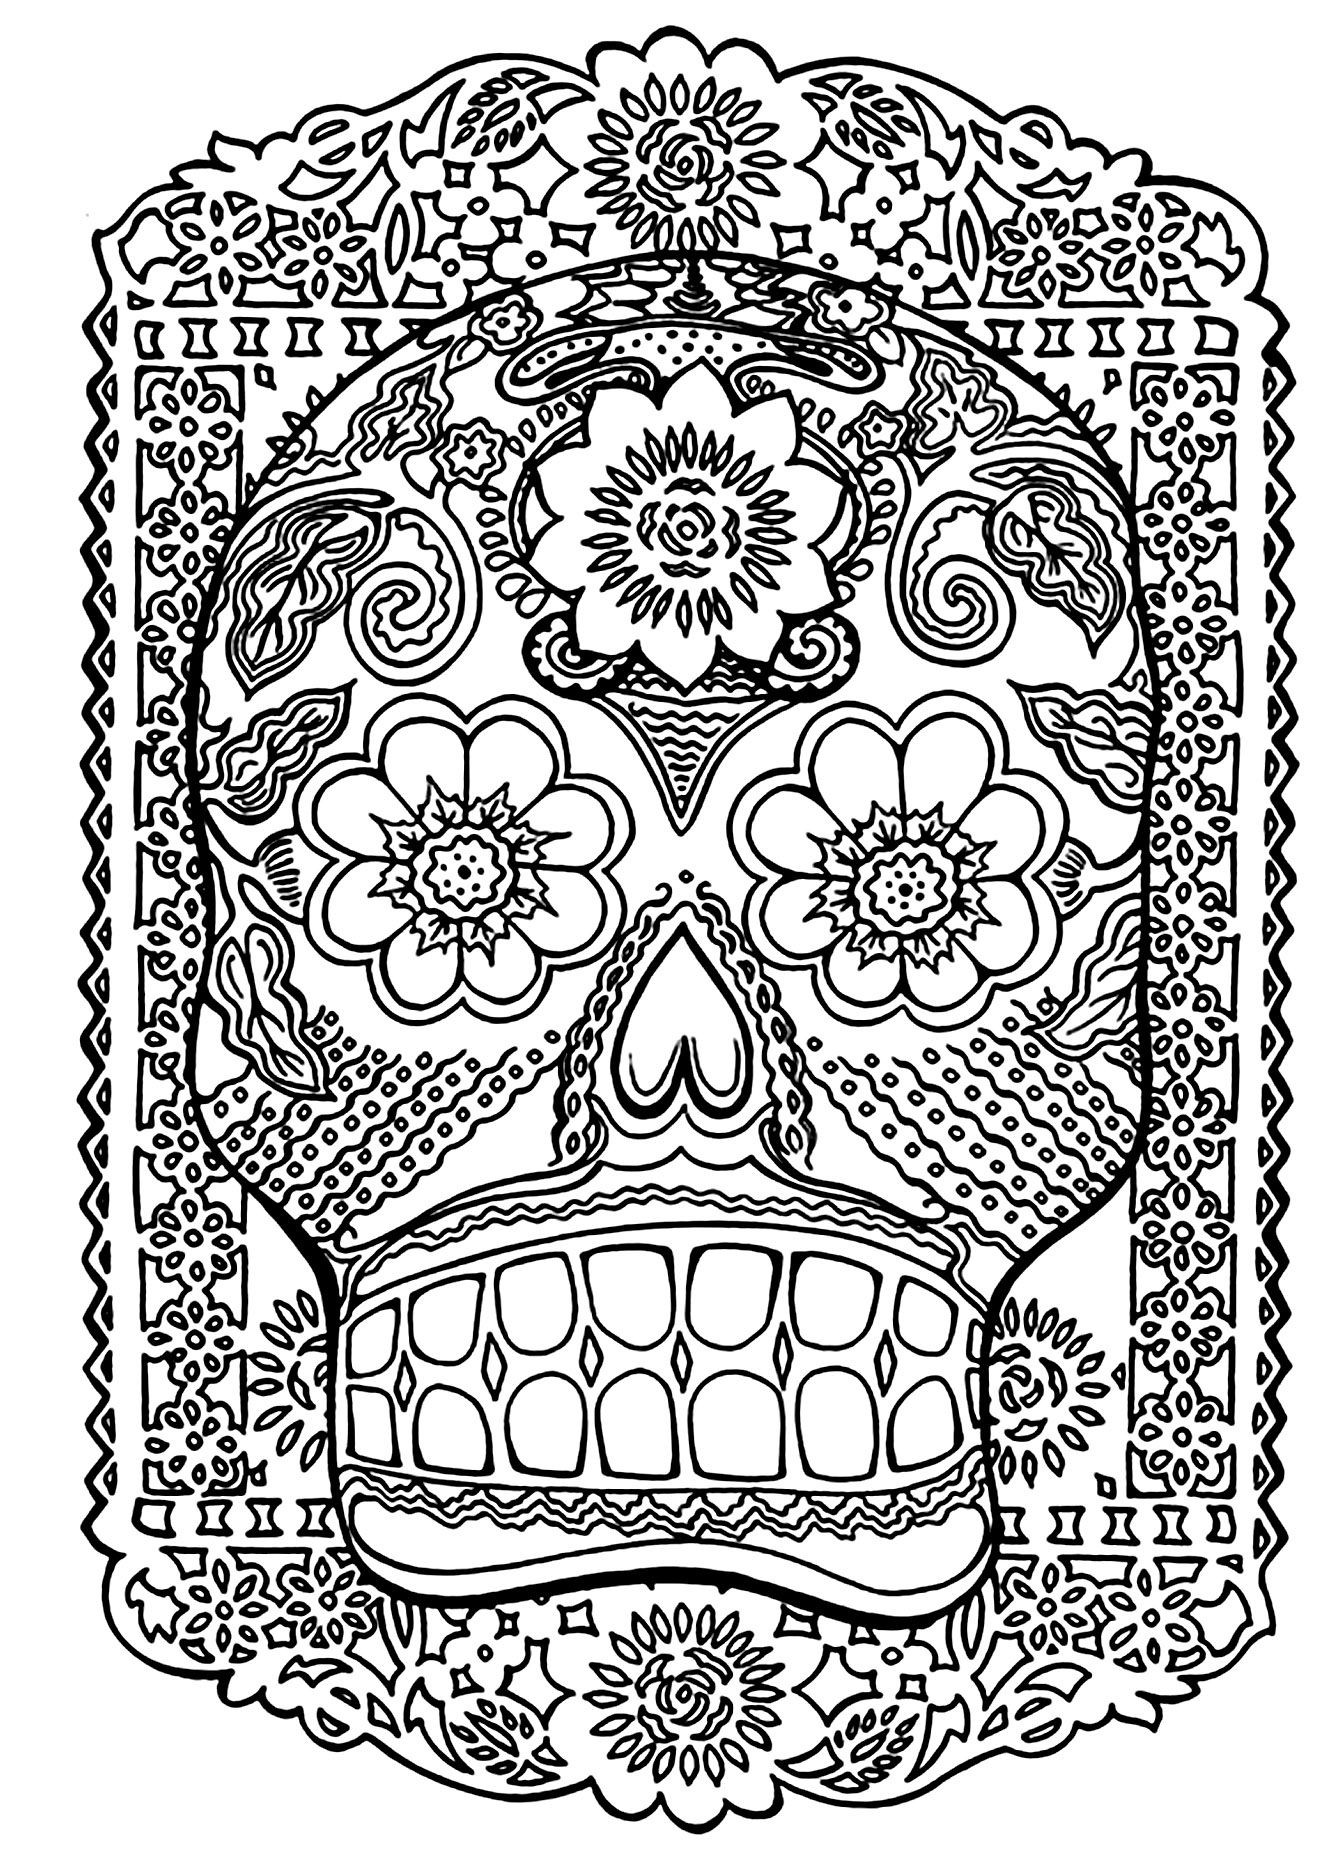 Adult Coloring Pages Abstract Skull  Adult Coloring Pages Abstract Skull Free